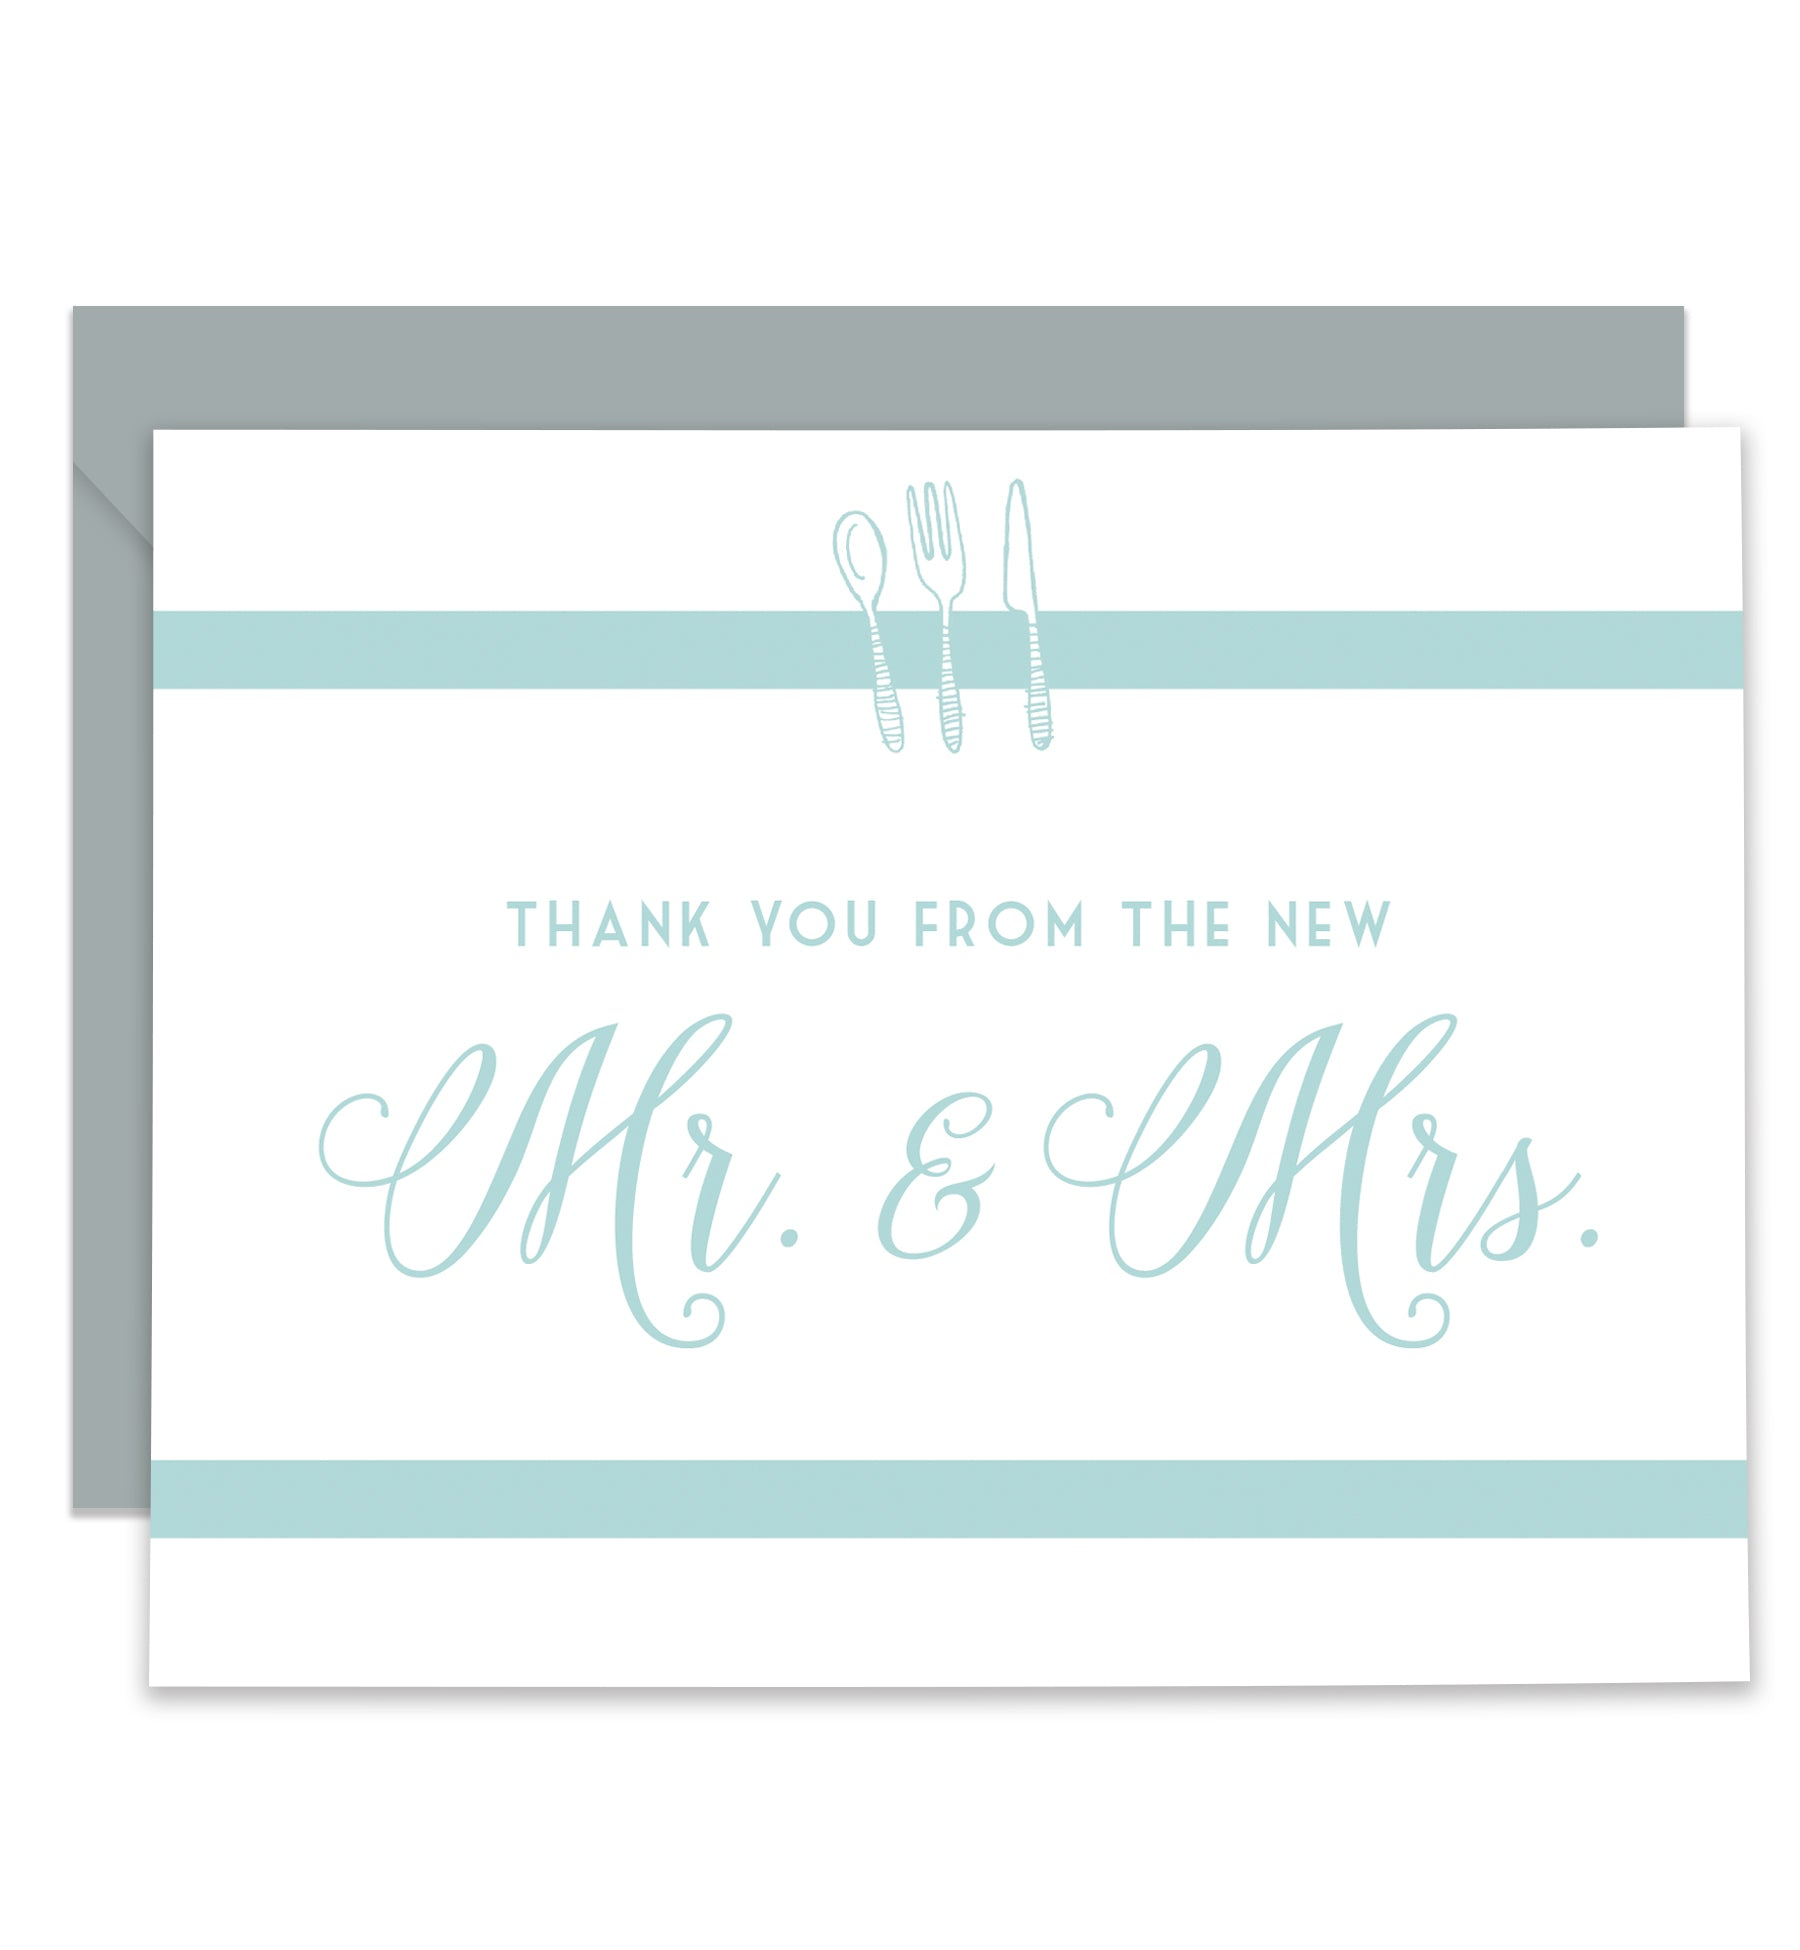 Forks & Spoons Newlyweds Thank You Cards Coll. 5